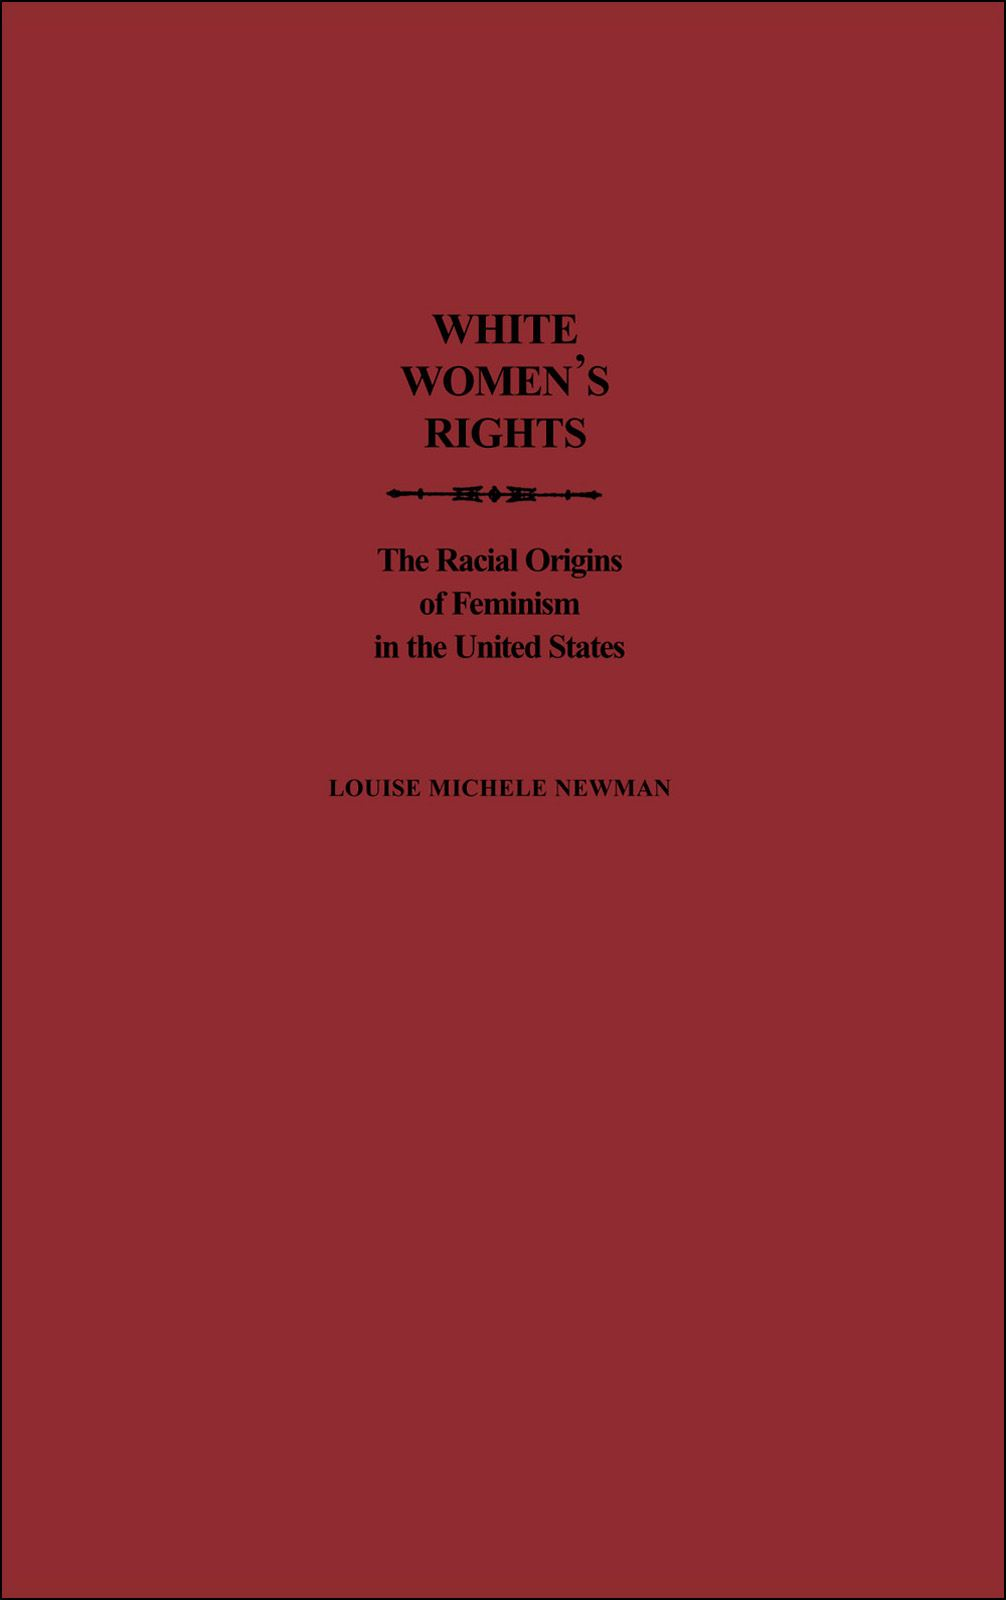 White Women's Rights : The Racial Origins of Feminism in the United States